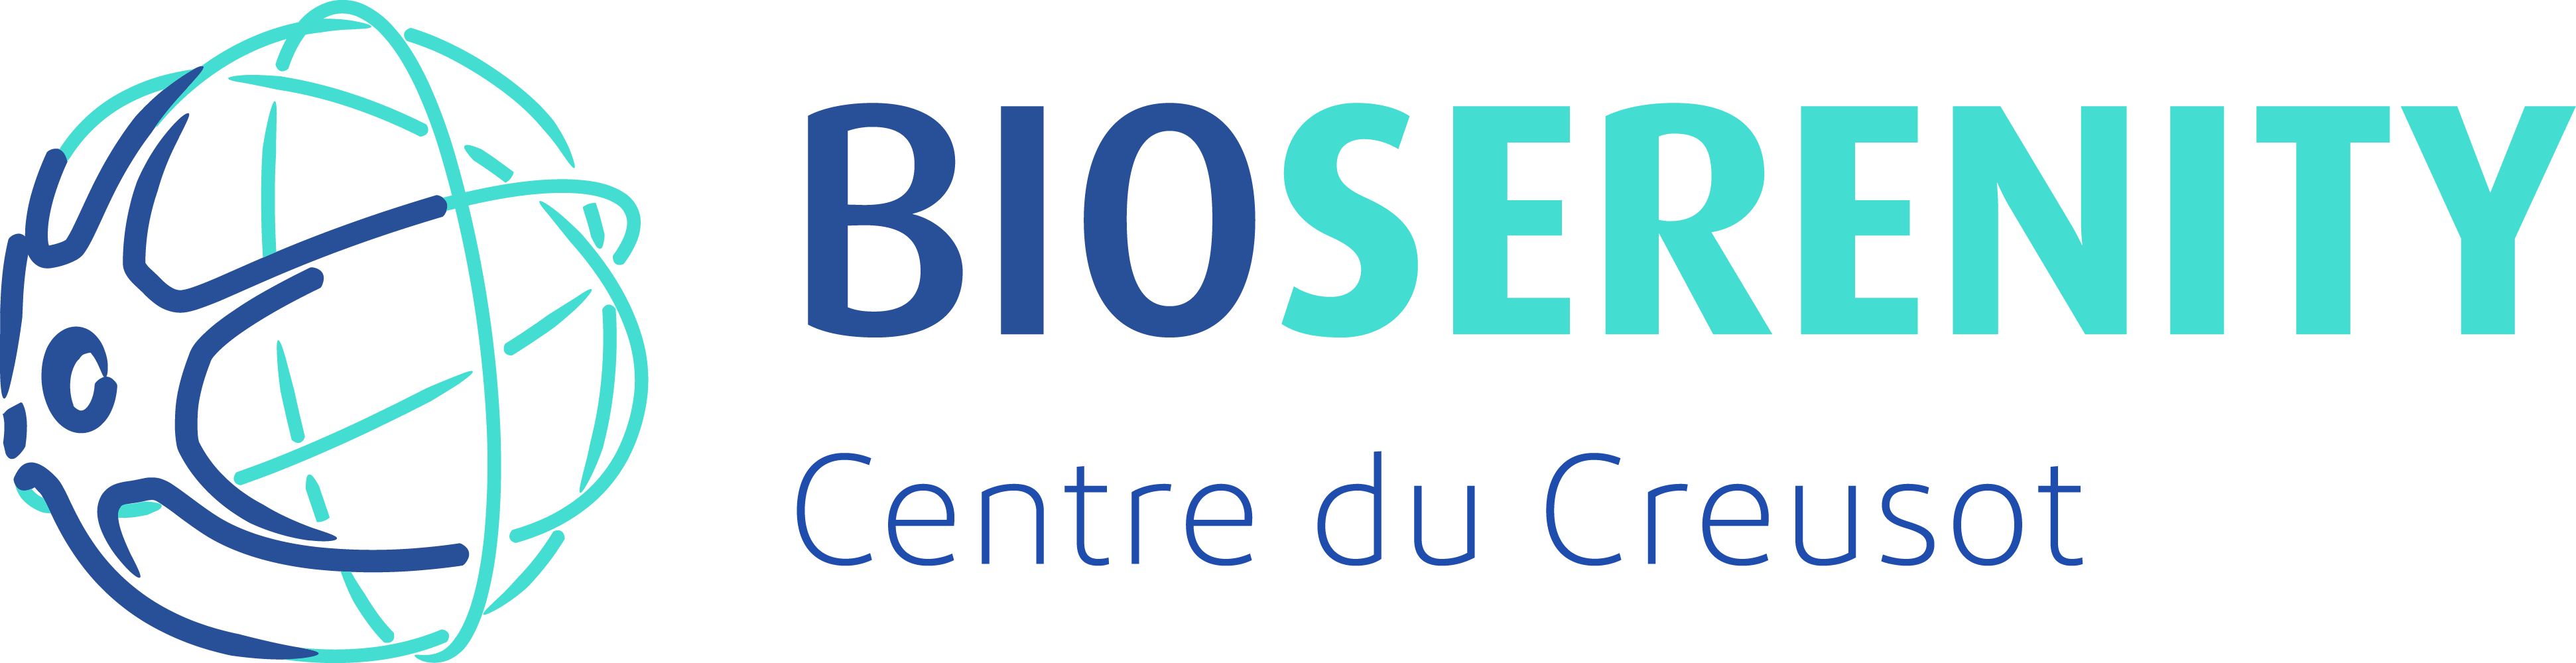 Centre BioSerenity Chateau-Salins